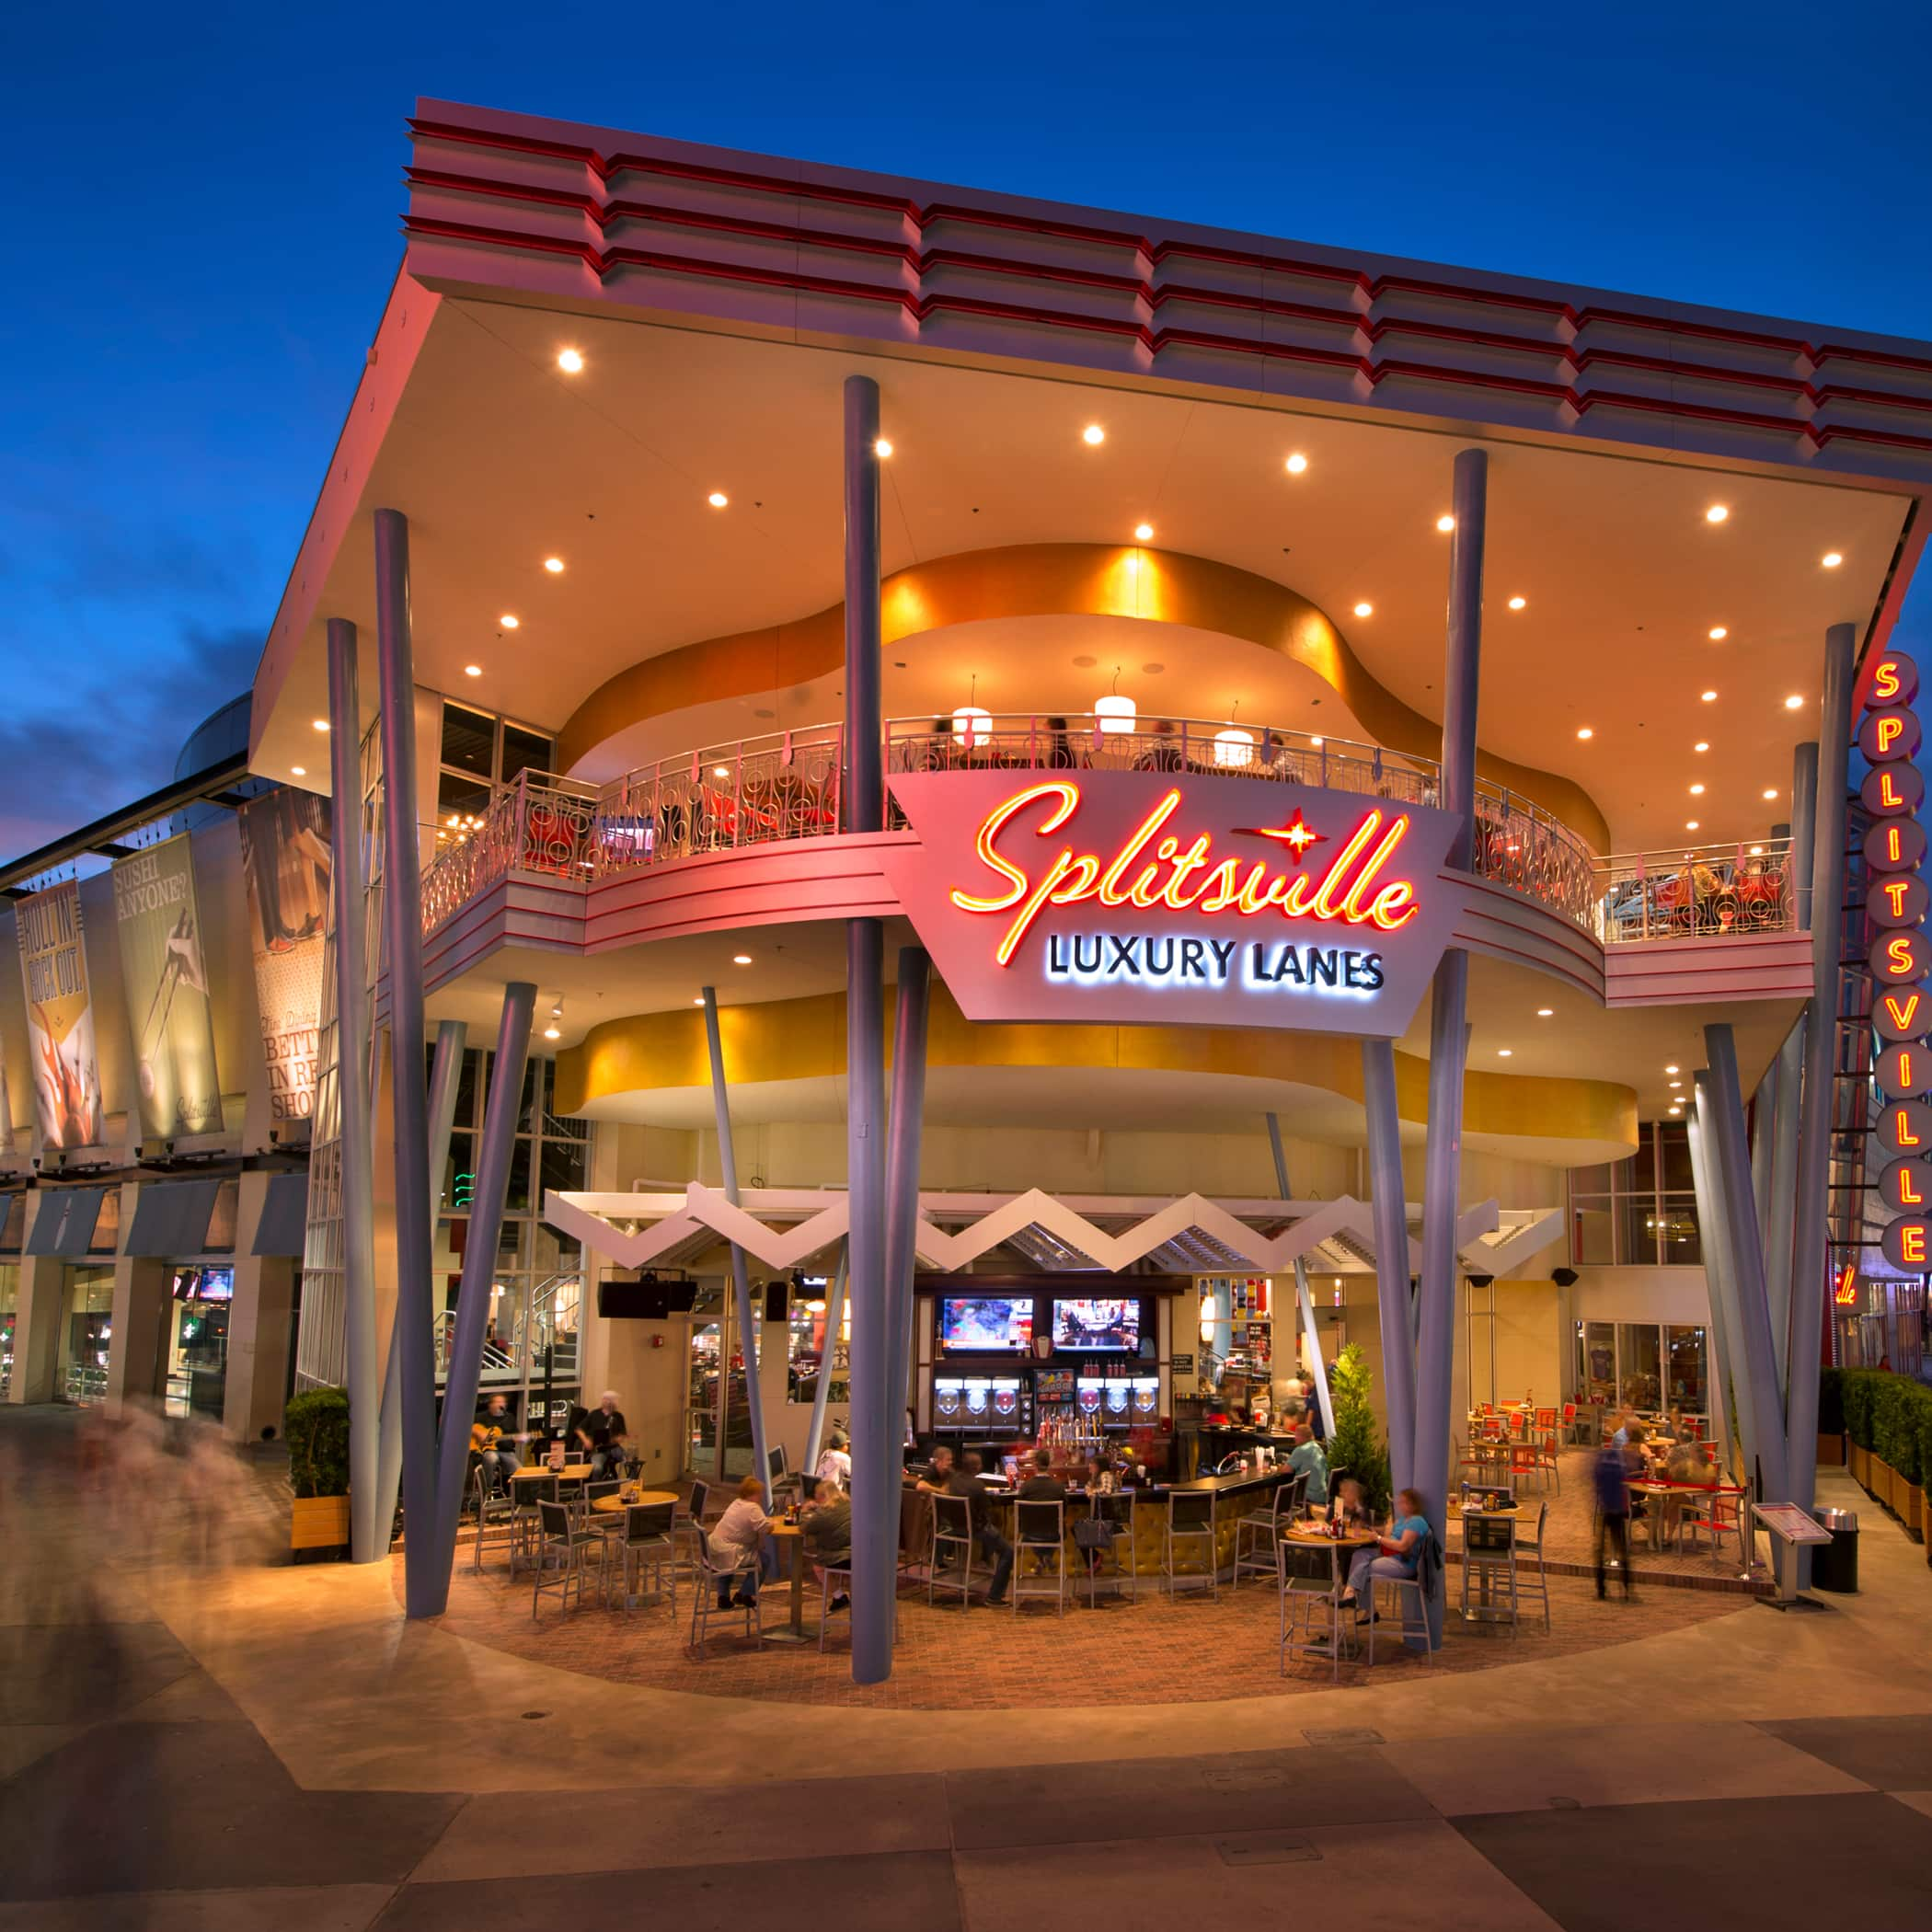 The exterior of Splitsville Luxury Lanes at Disney Springs in Florida, illuminated at night